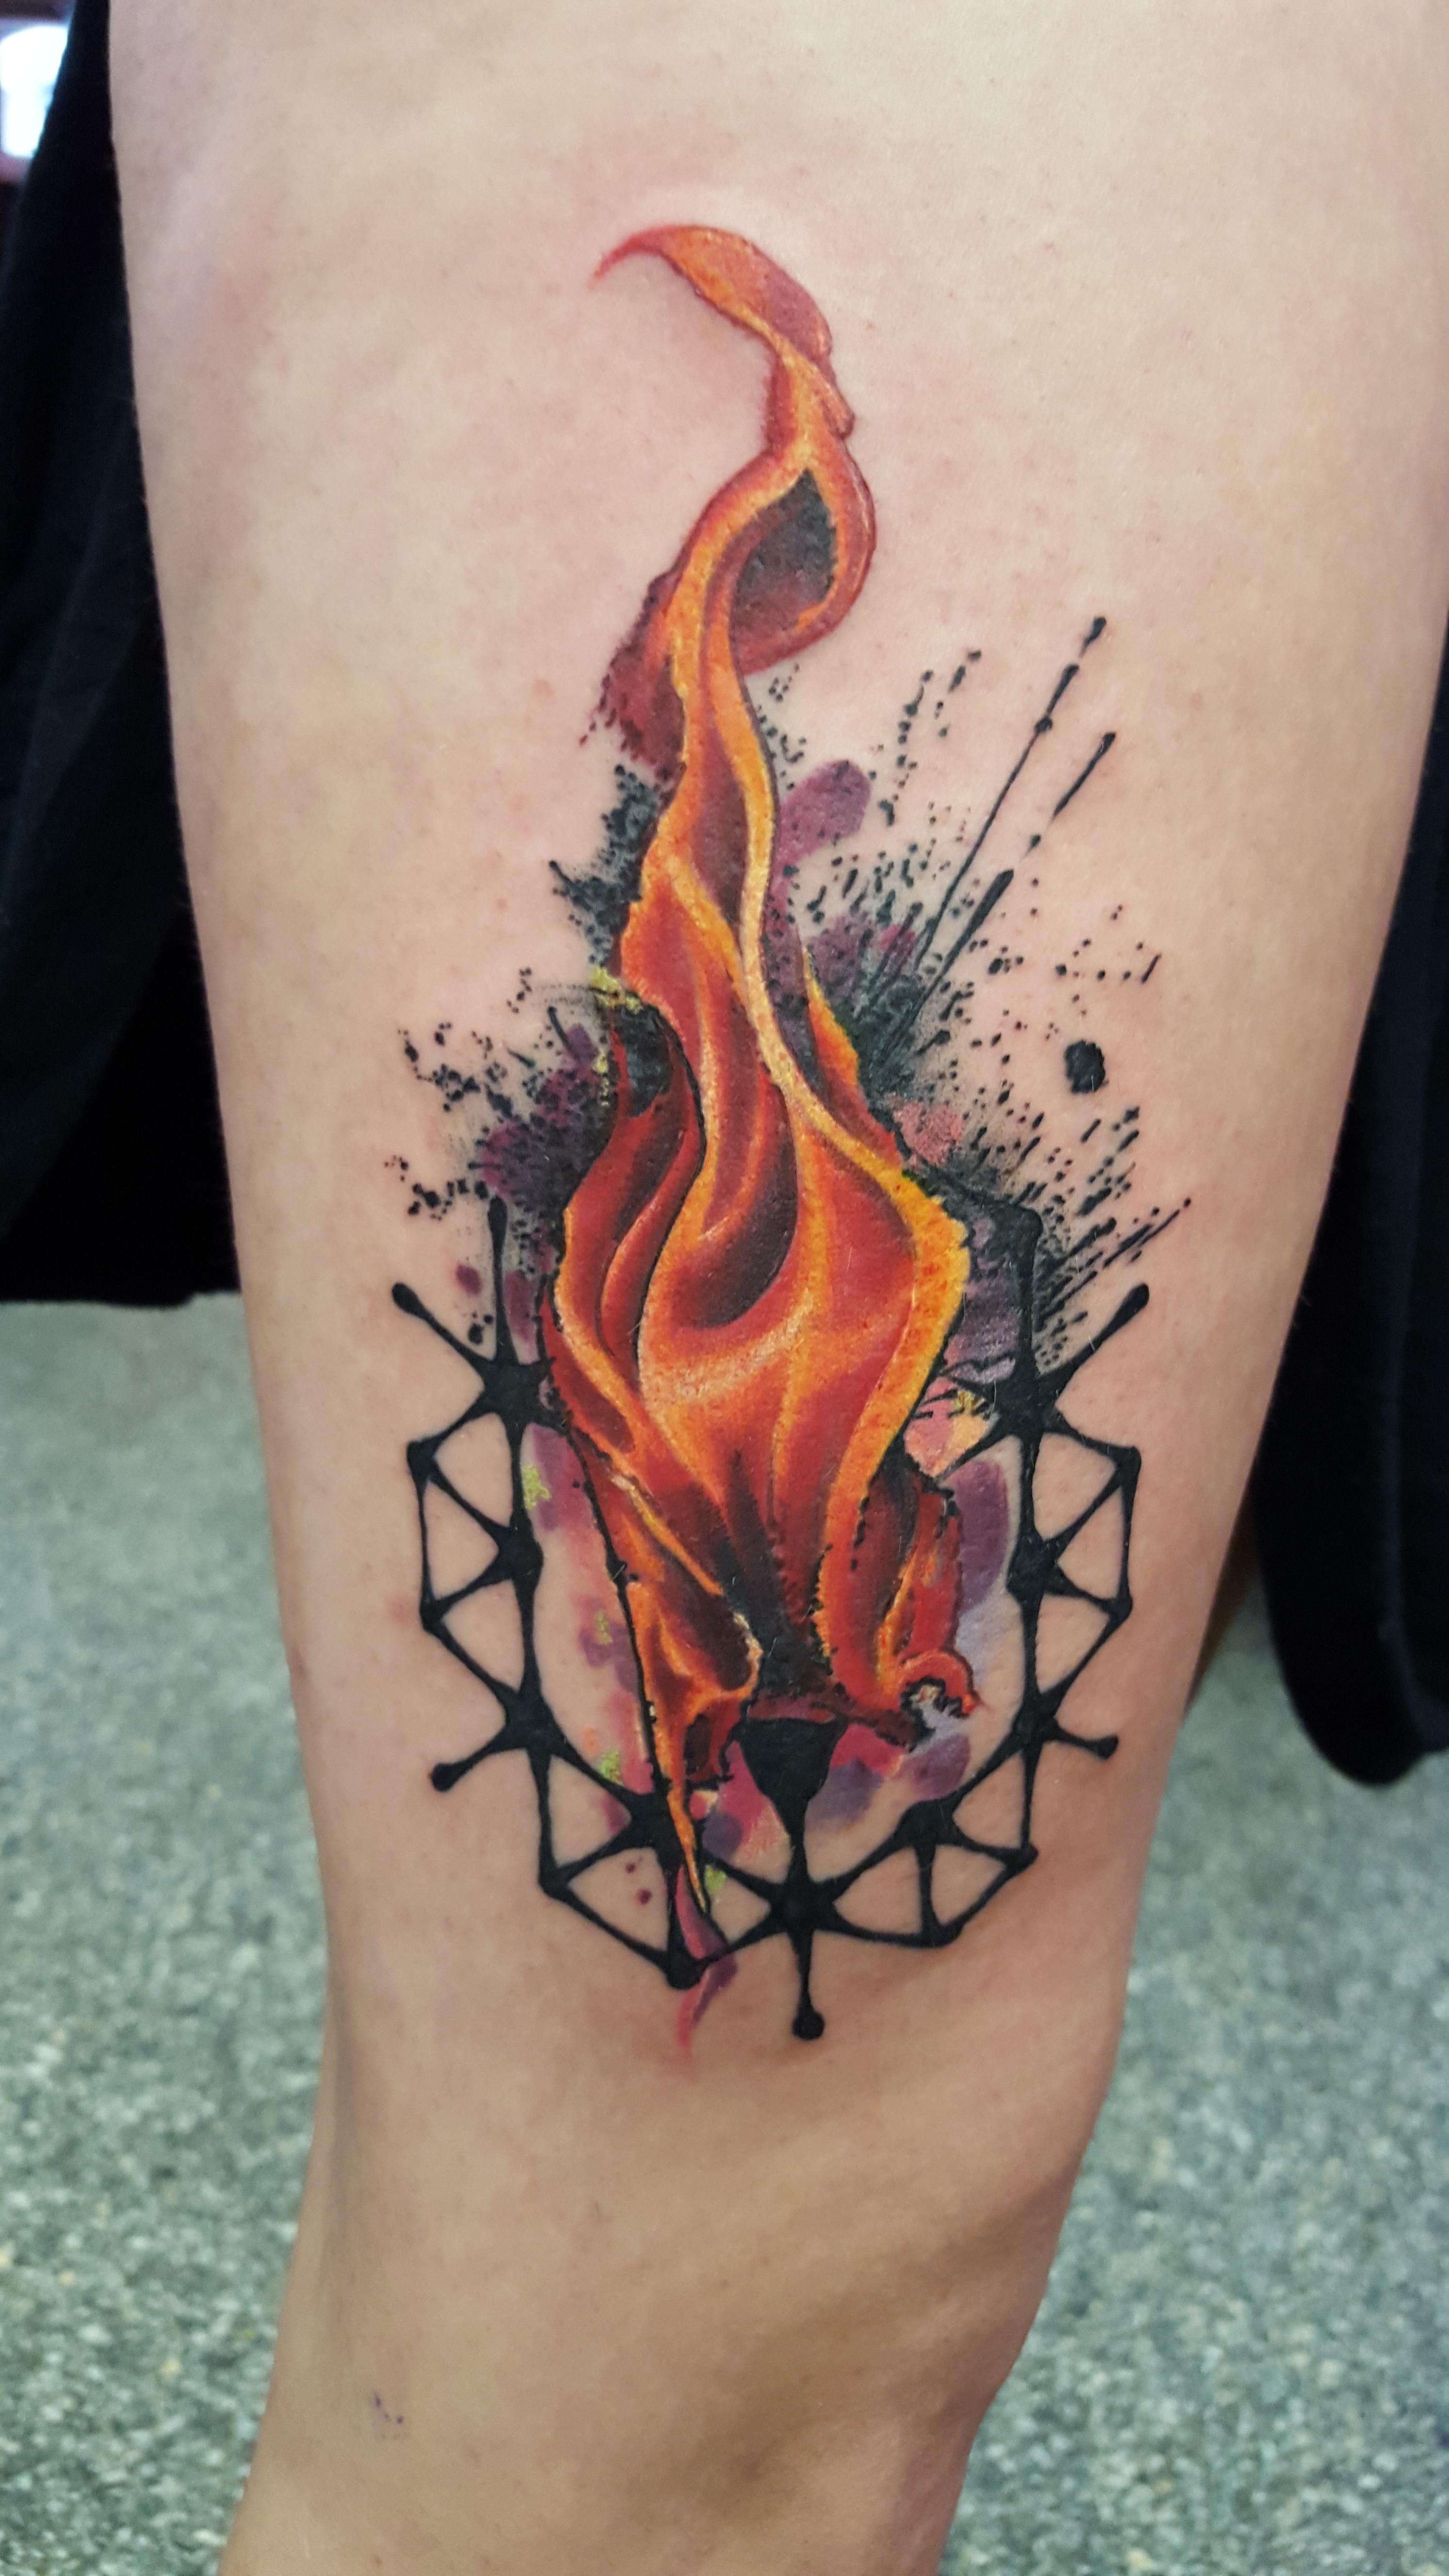 Love my new tattoo tattoos pinterest tattoos fire for Tattoo pictures of flames